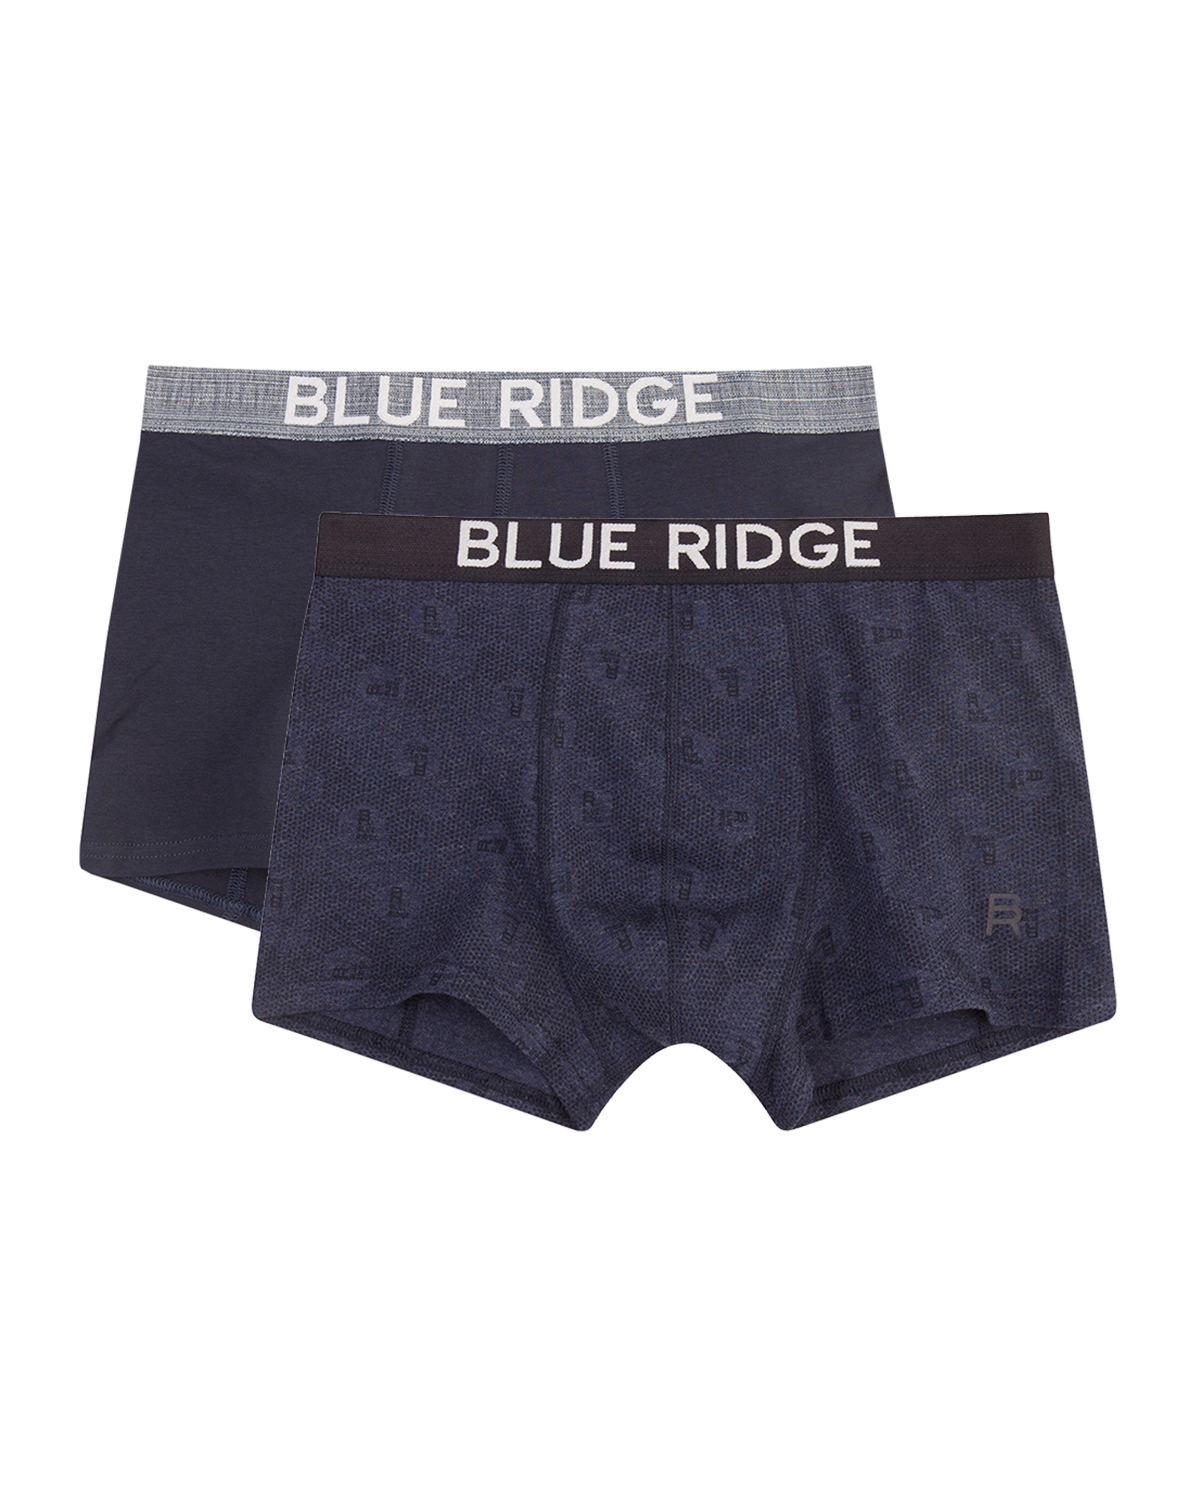 Heren blue ridge boxer 2-pack